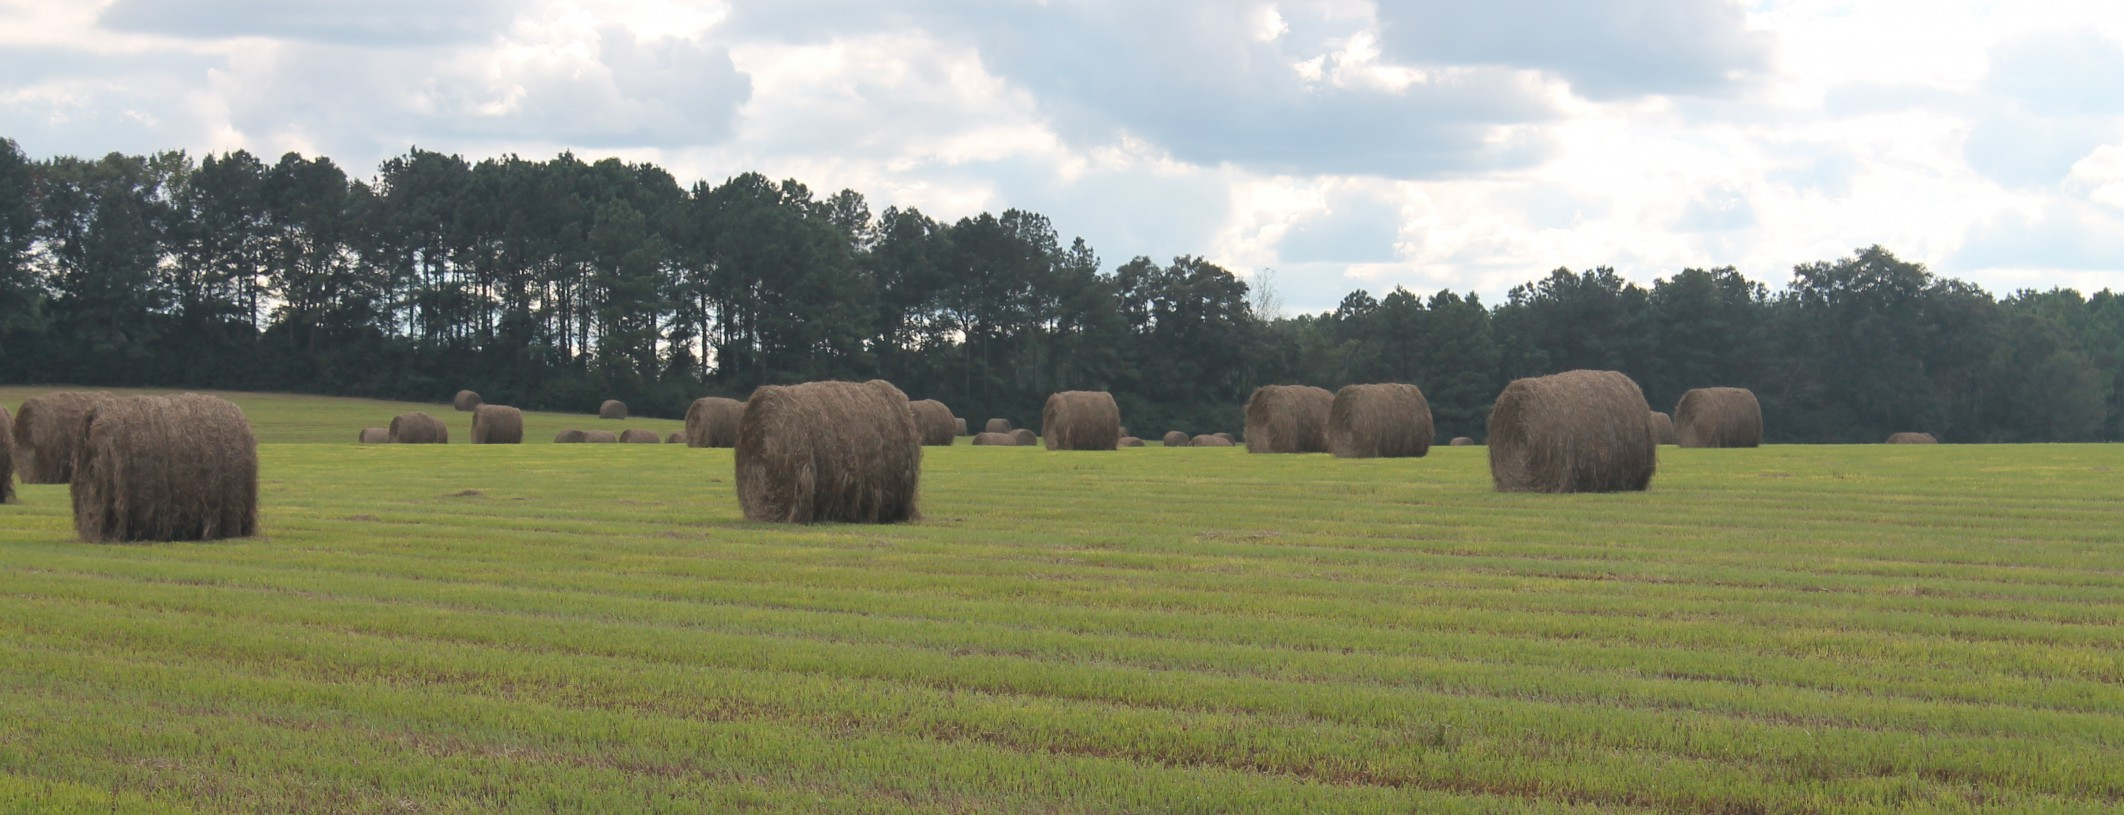 Bahiagrass hay field in Washington County this past summer.